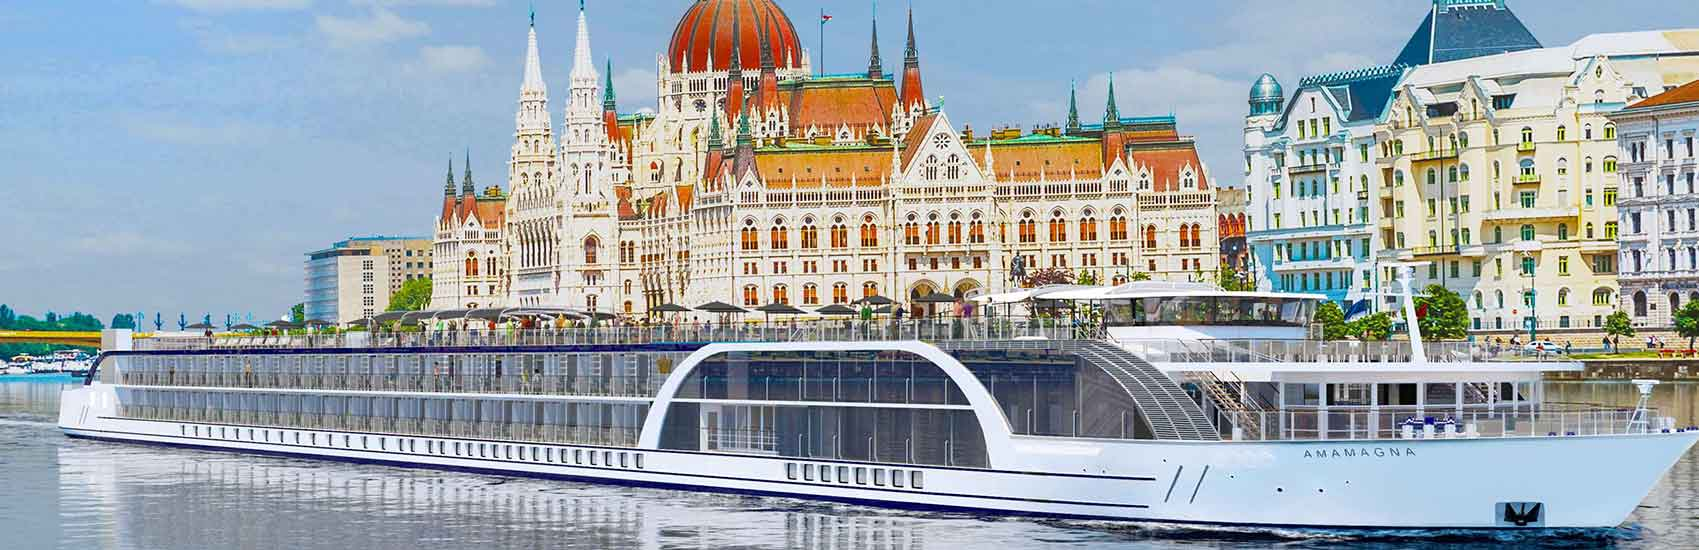 Exclusive Virtuoso Offer with AmaWaterways 2